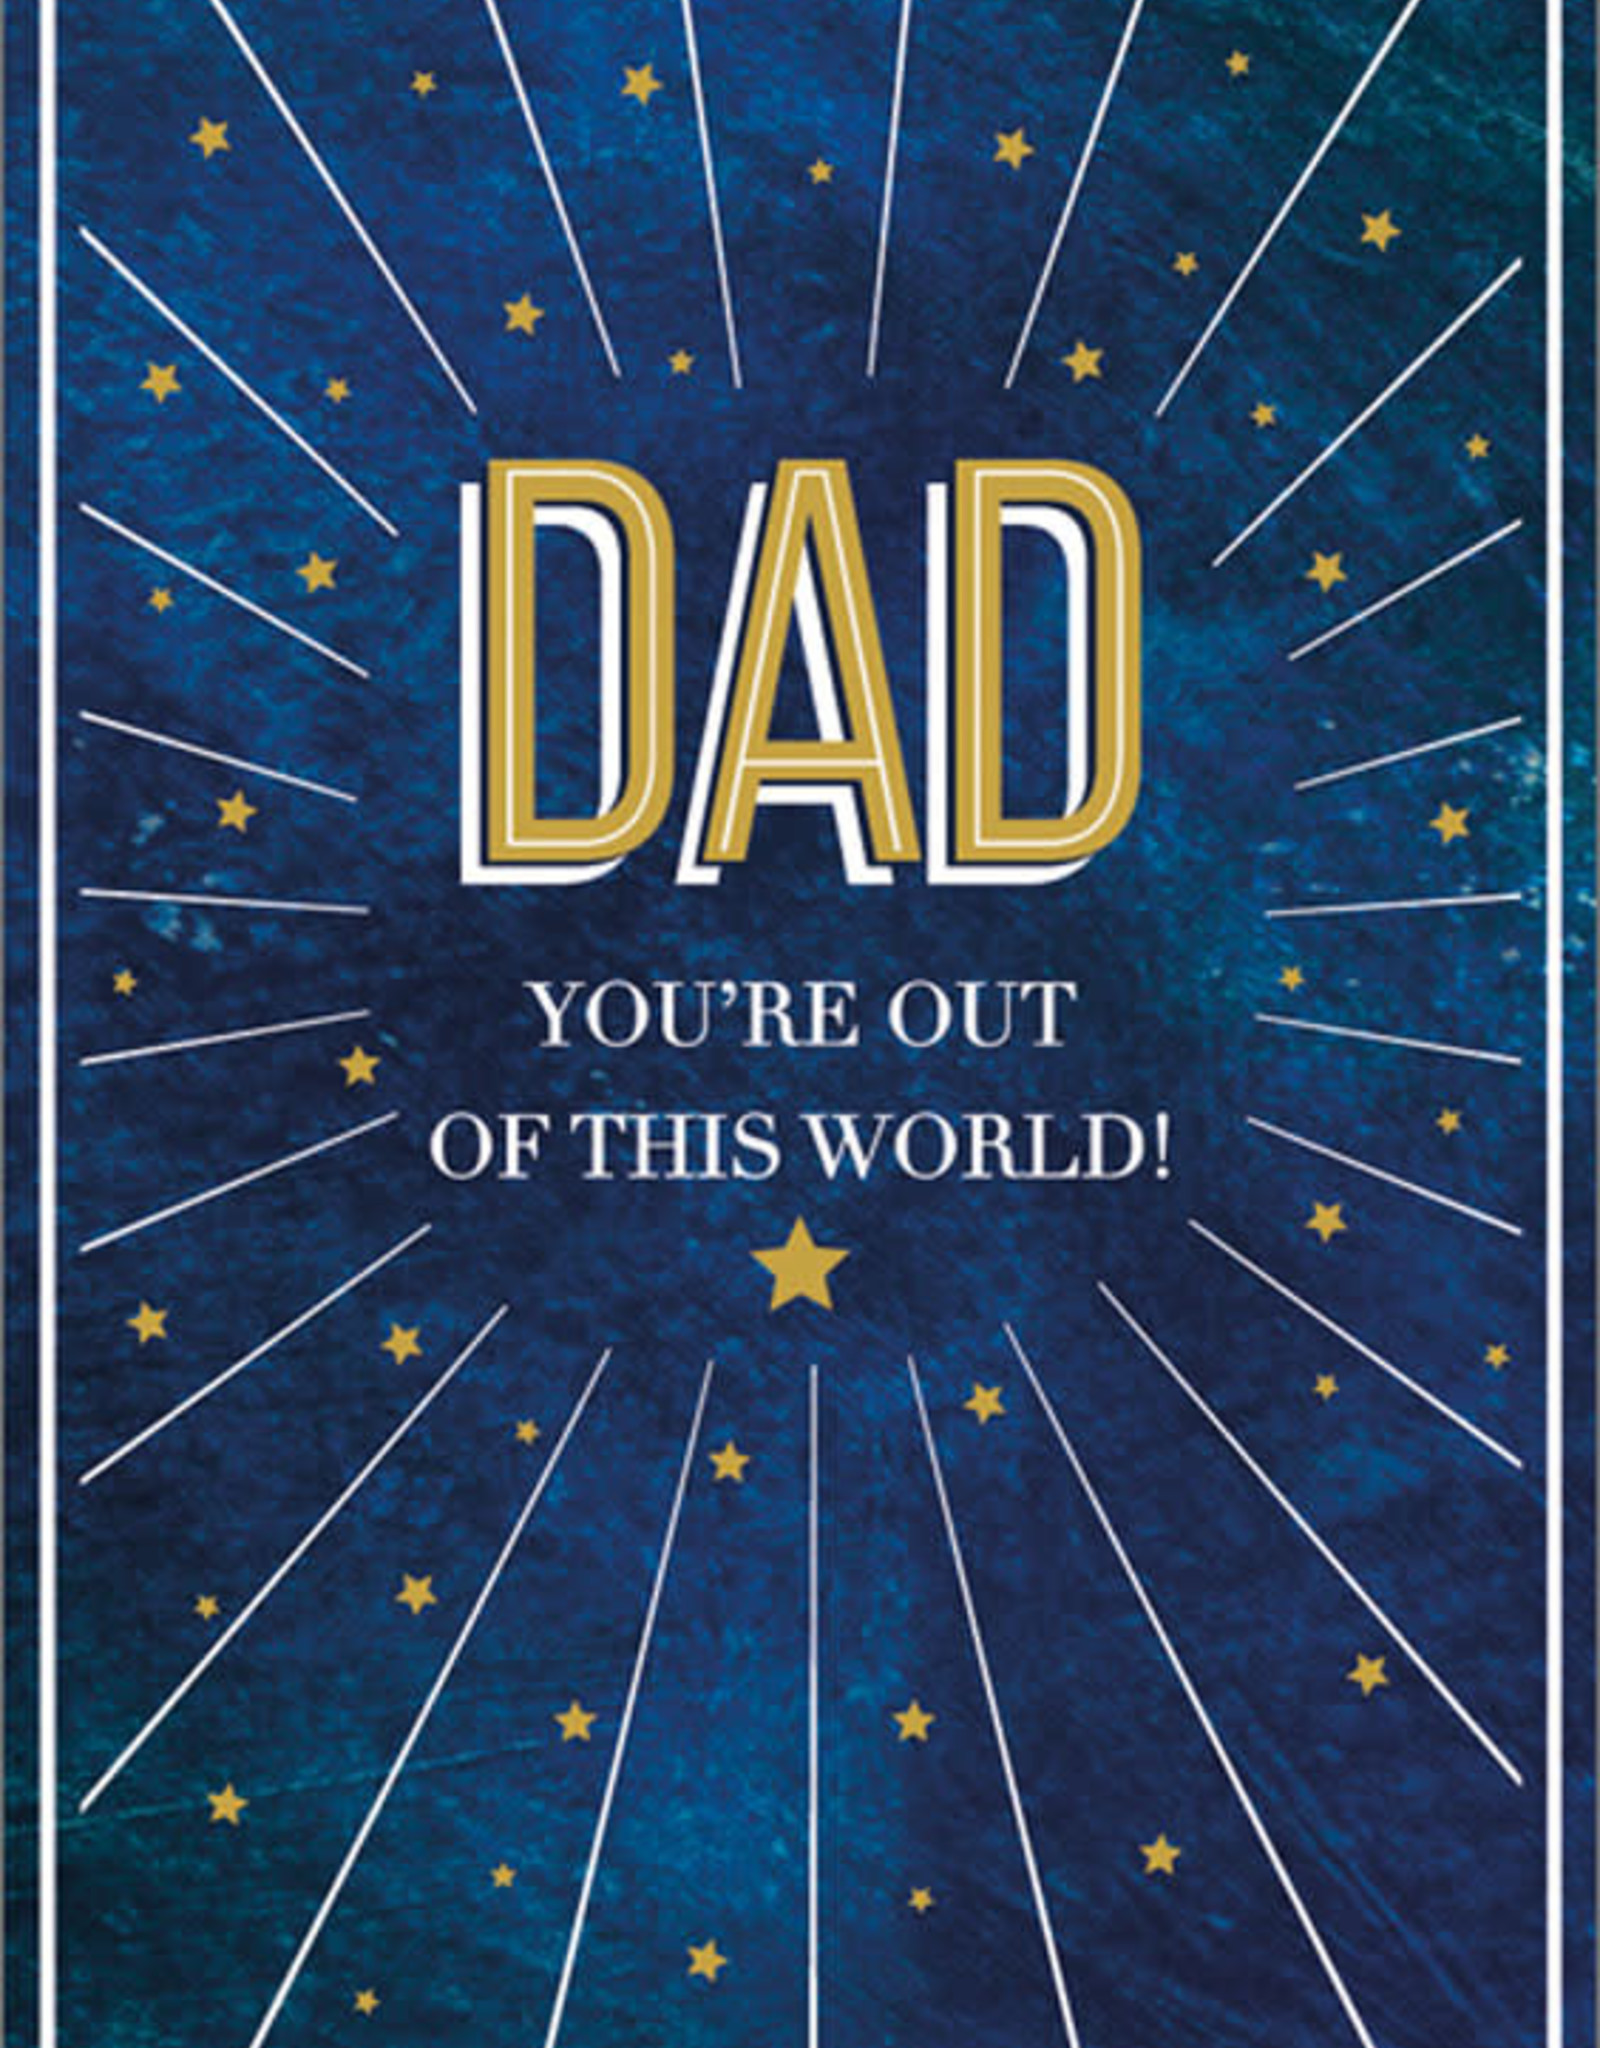 Father's Day Card - Dad You're Out Of This World!